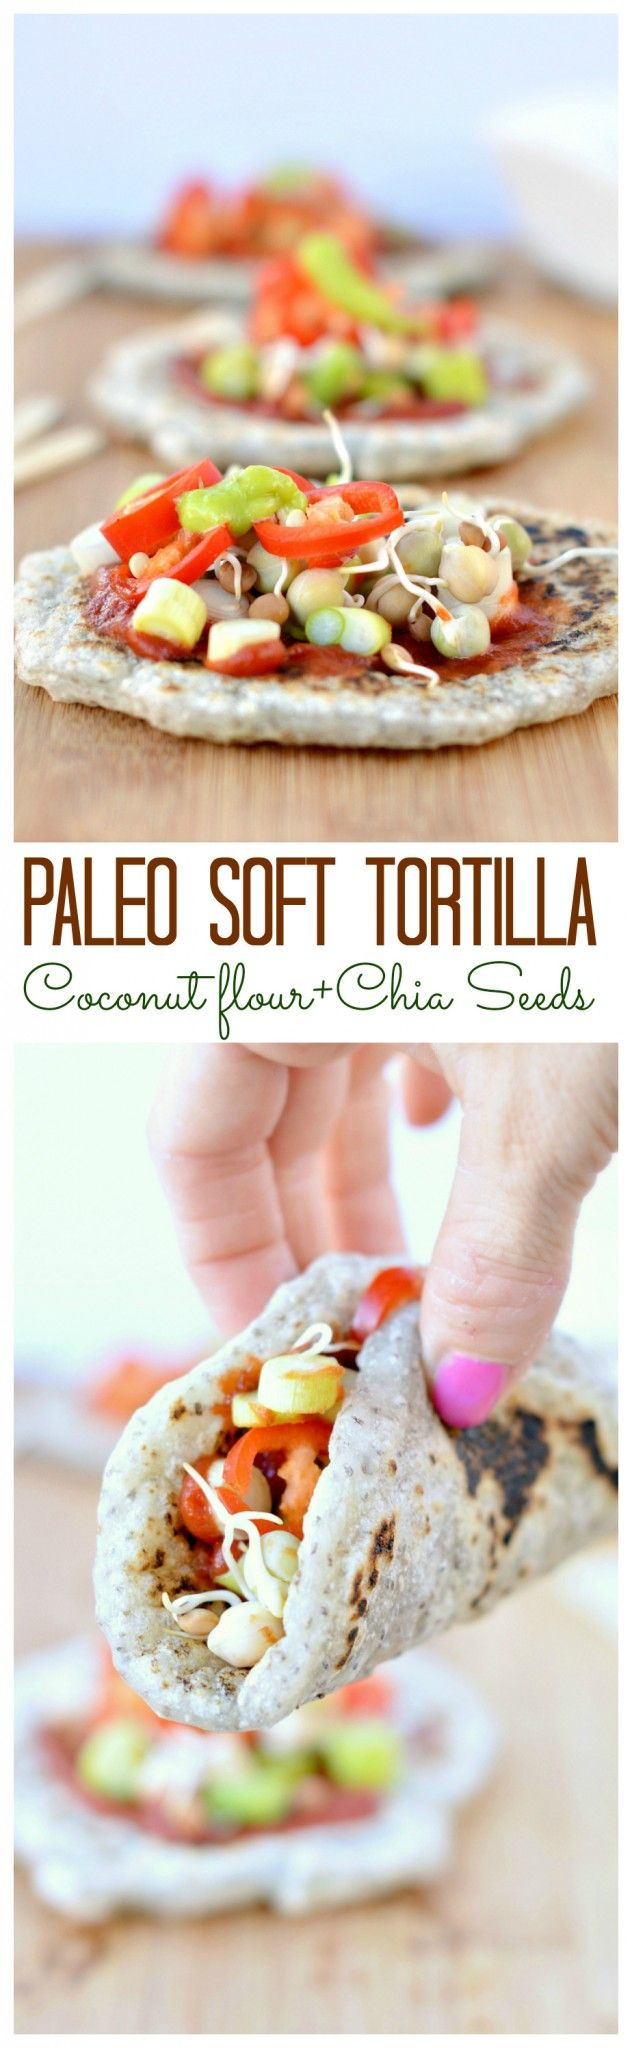 A simple recipe for gluten-free tortillas! They're soft, chewy and delicious!